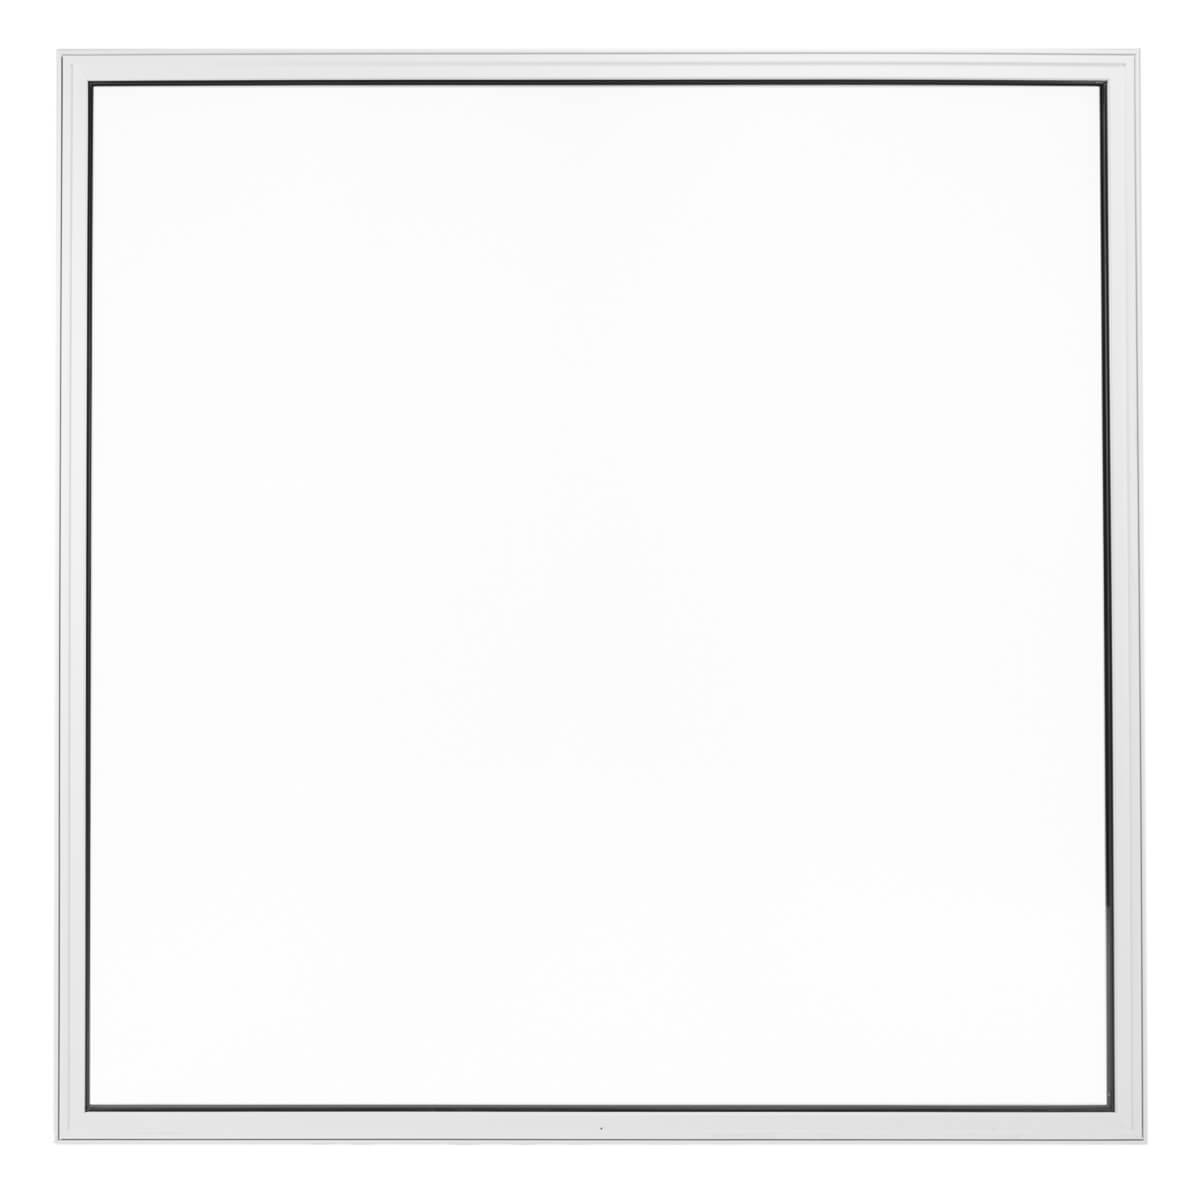 Custom Made Large Squared Fixed Picture Window on a White Background